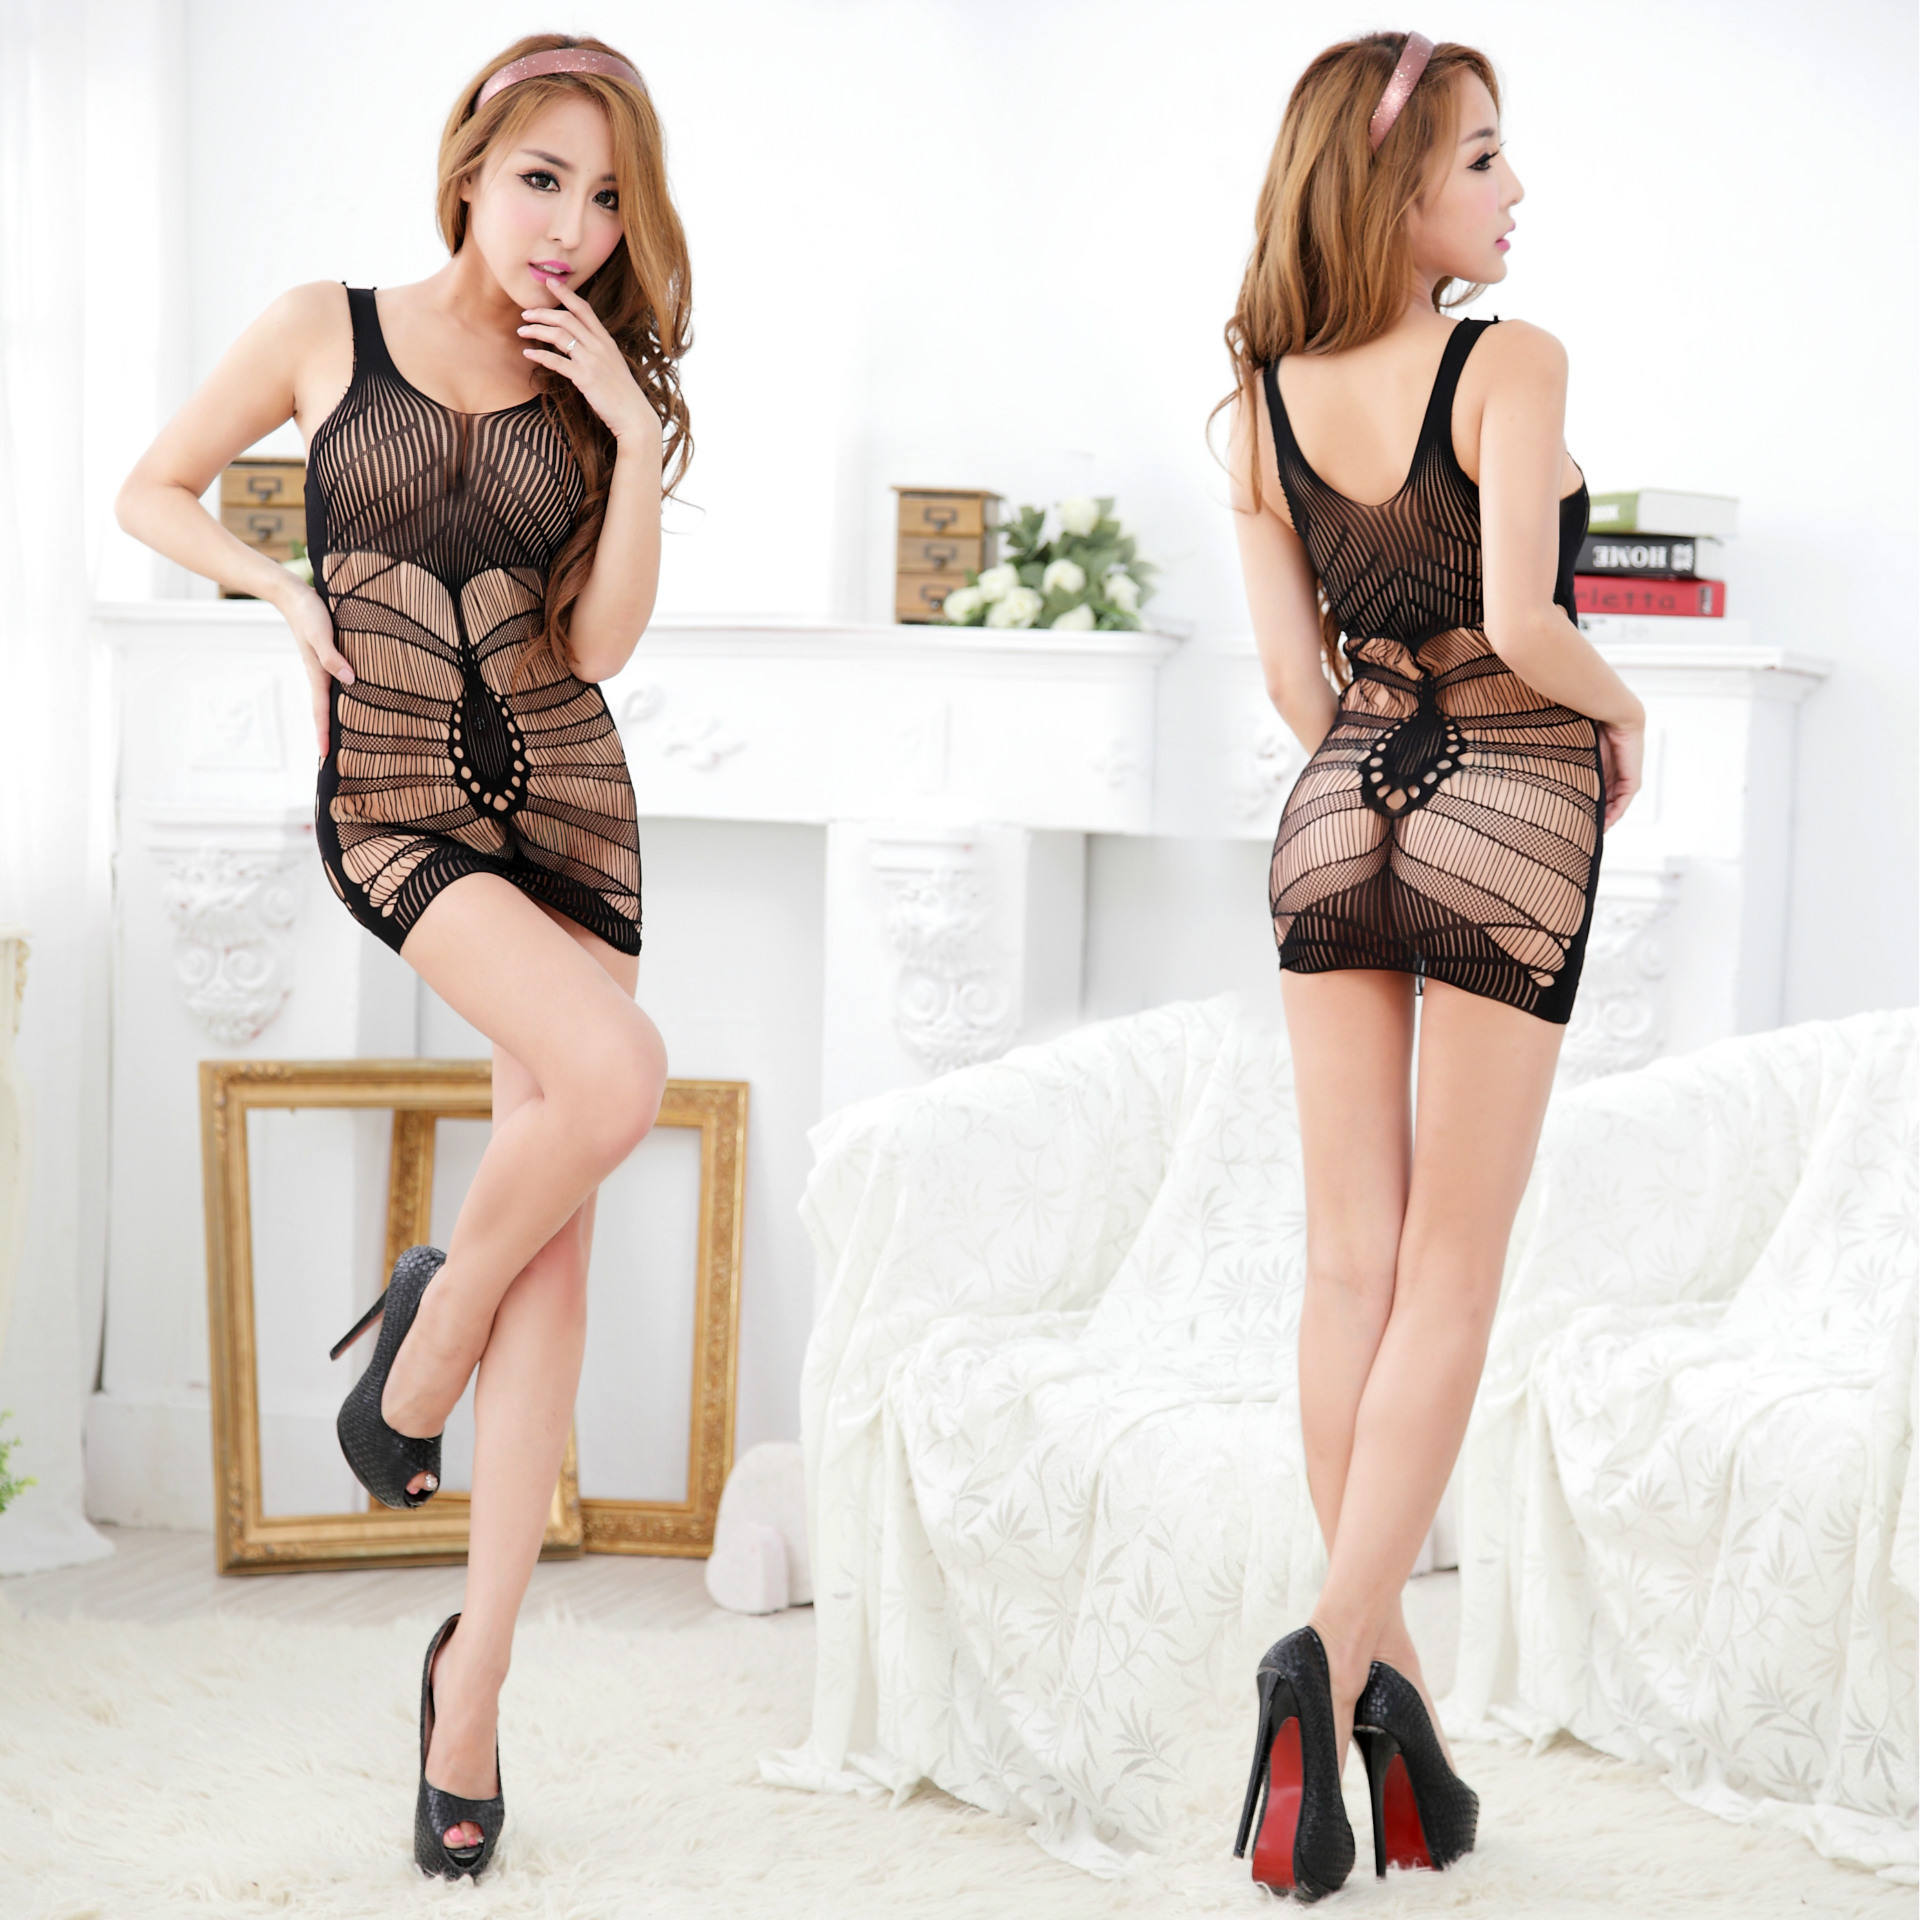 Renda Hollow Keluar Transparan Stoking Seksi Mesh Teddy